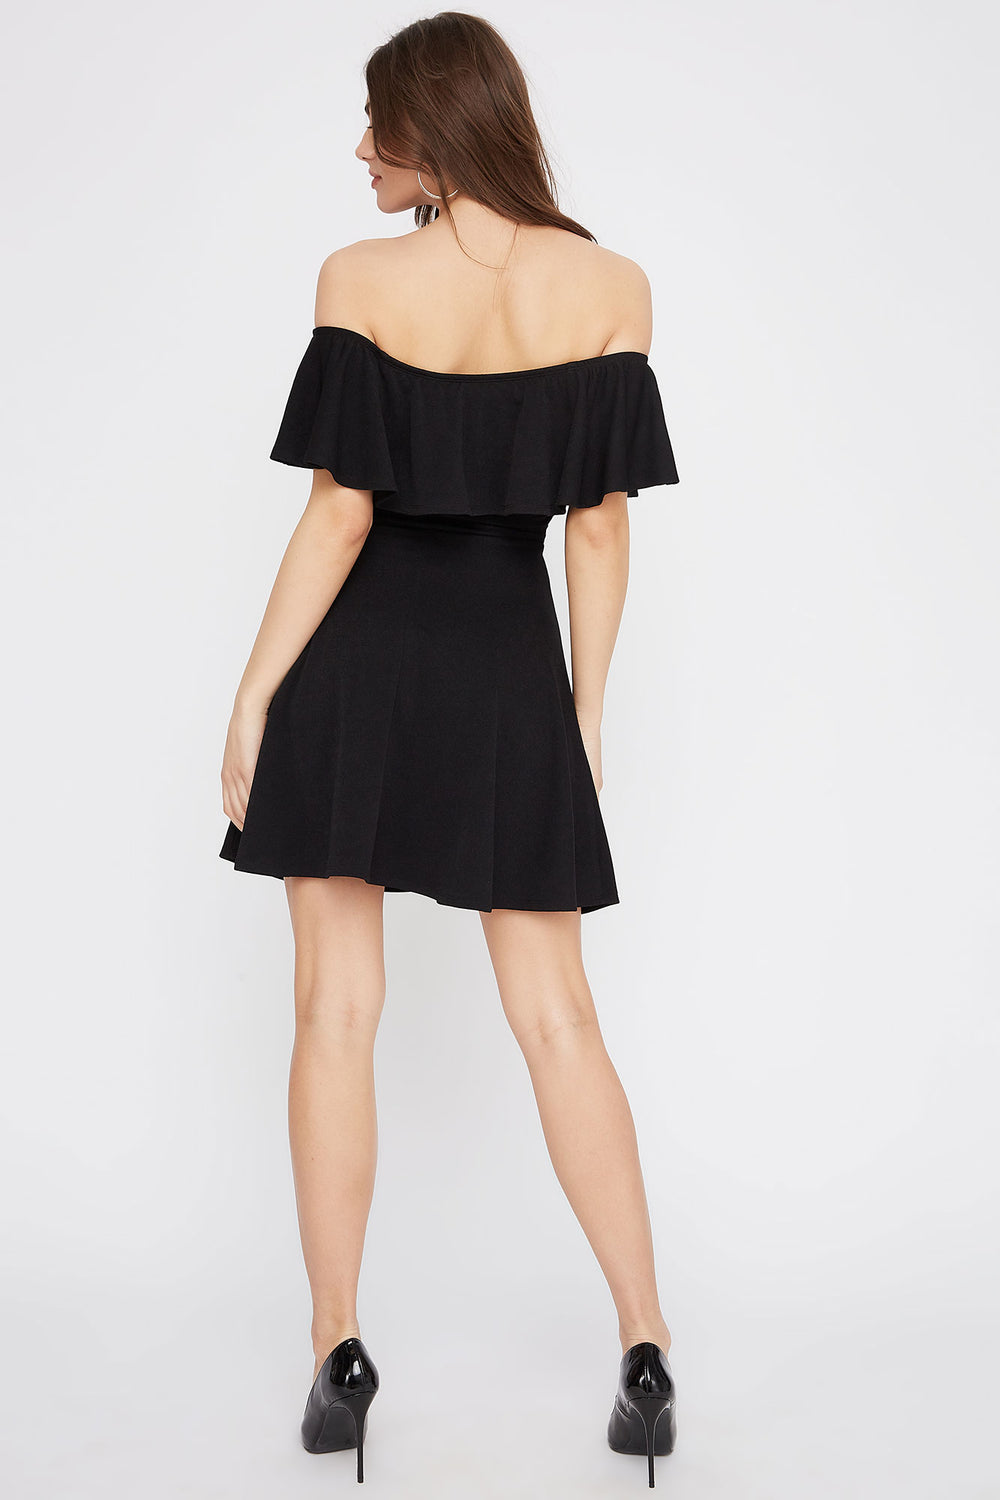 Off The Shoulder Ruffle Skater Dress Black